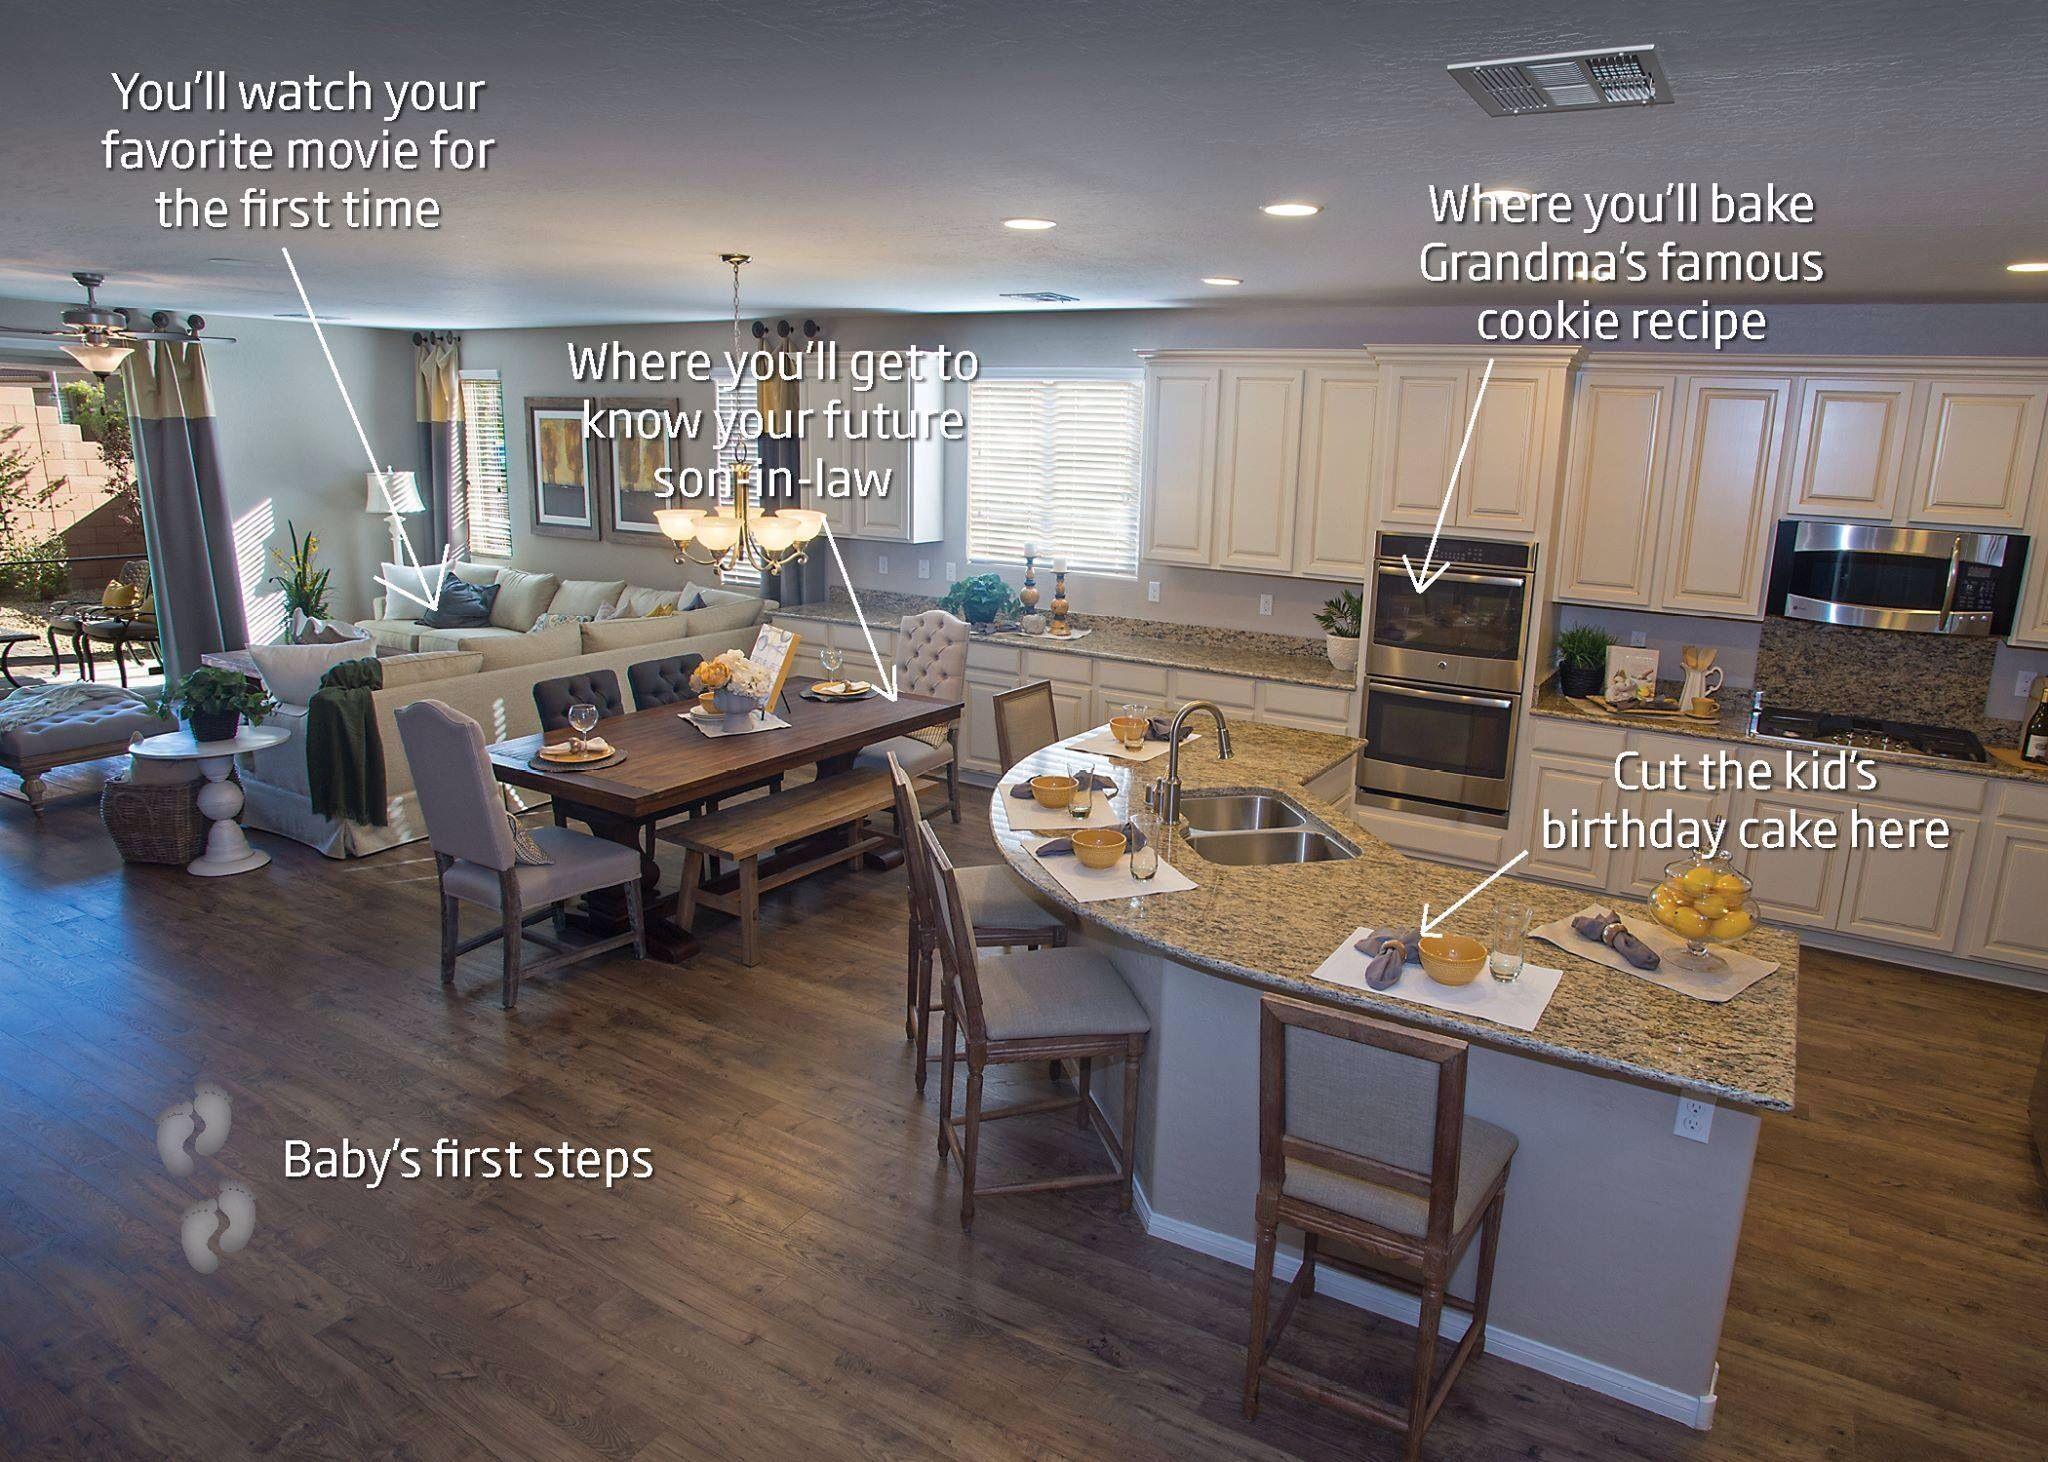 Cool advertisement custom home features pinterest for Luxury home features